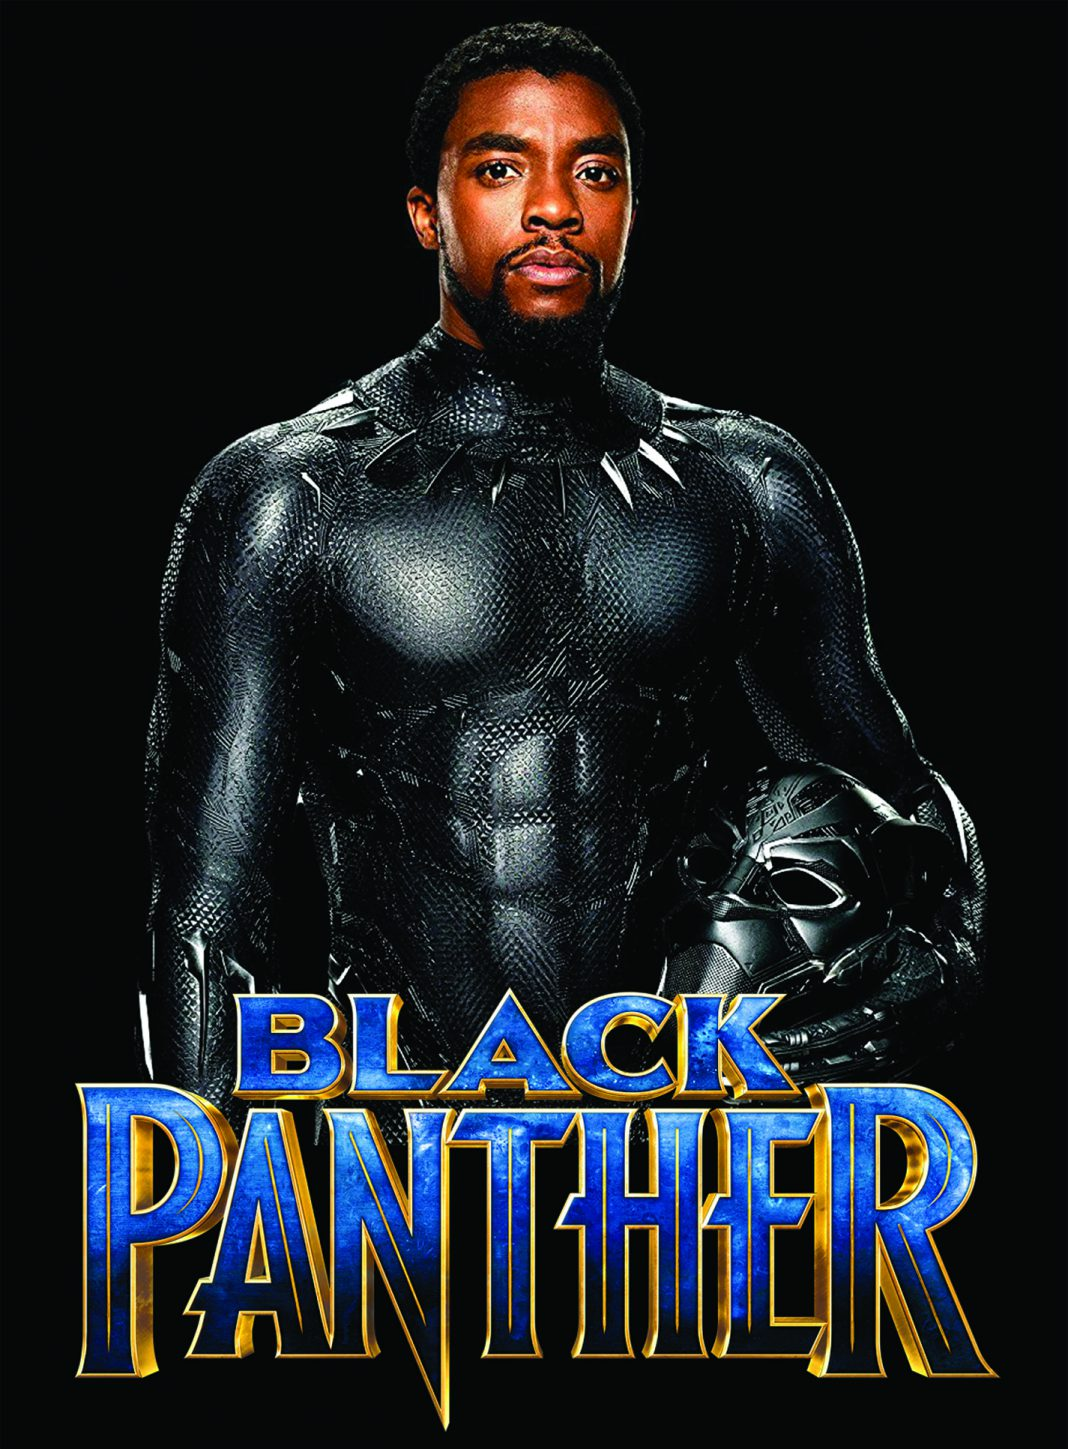 King T'Challa for Black Panther.